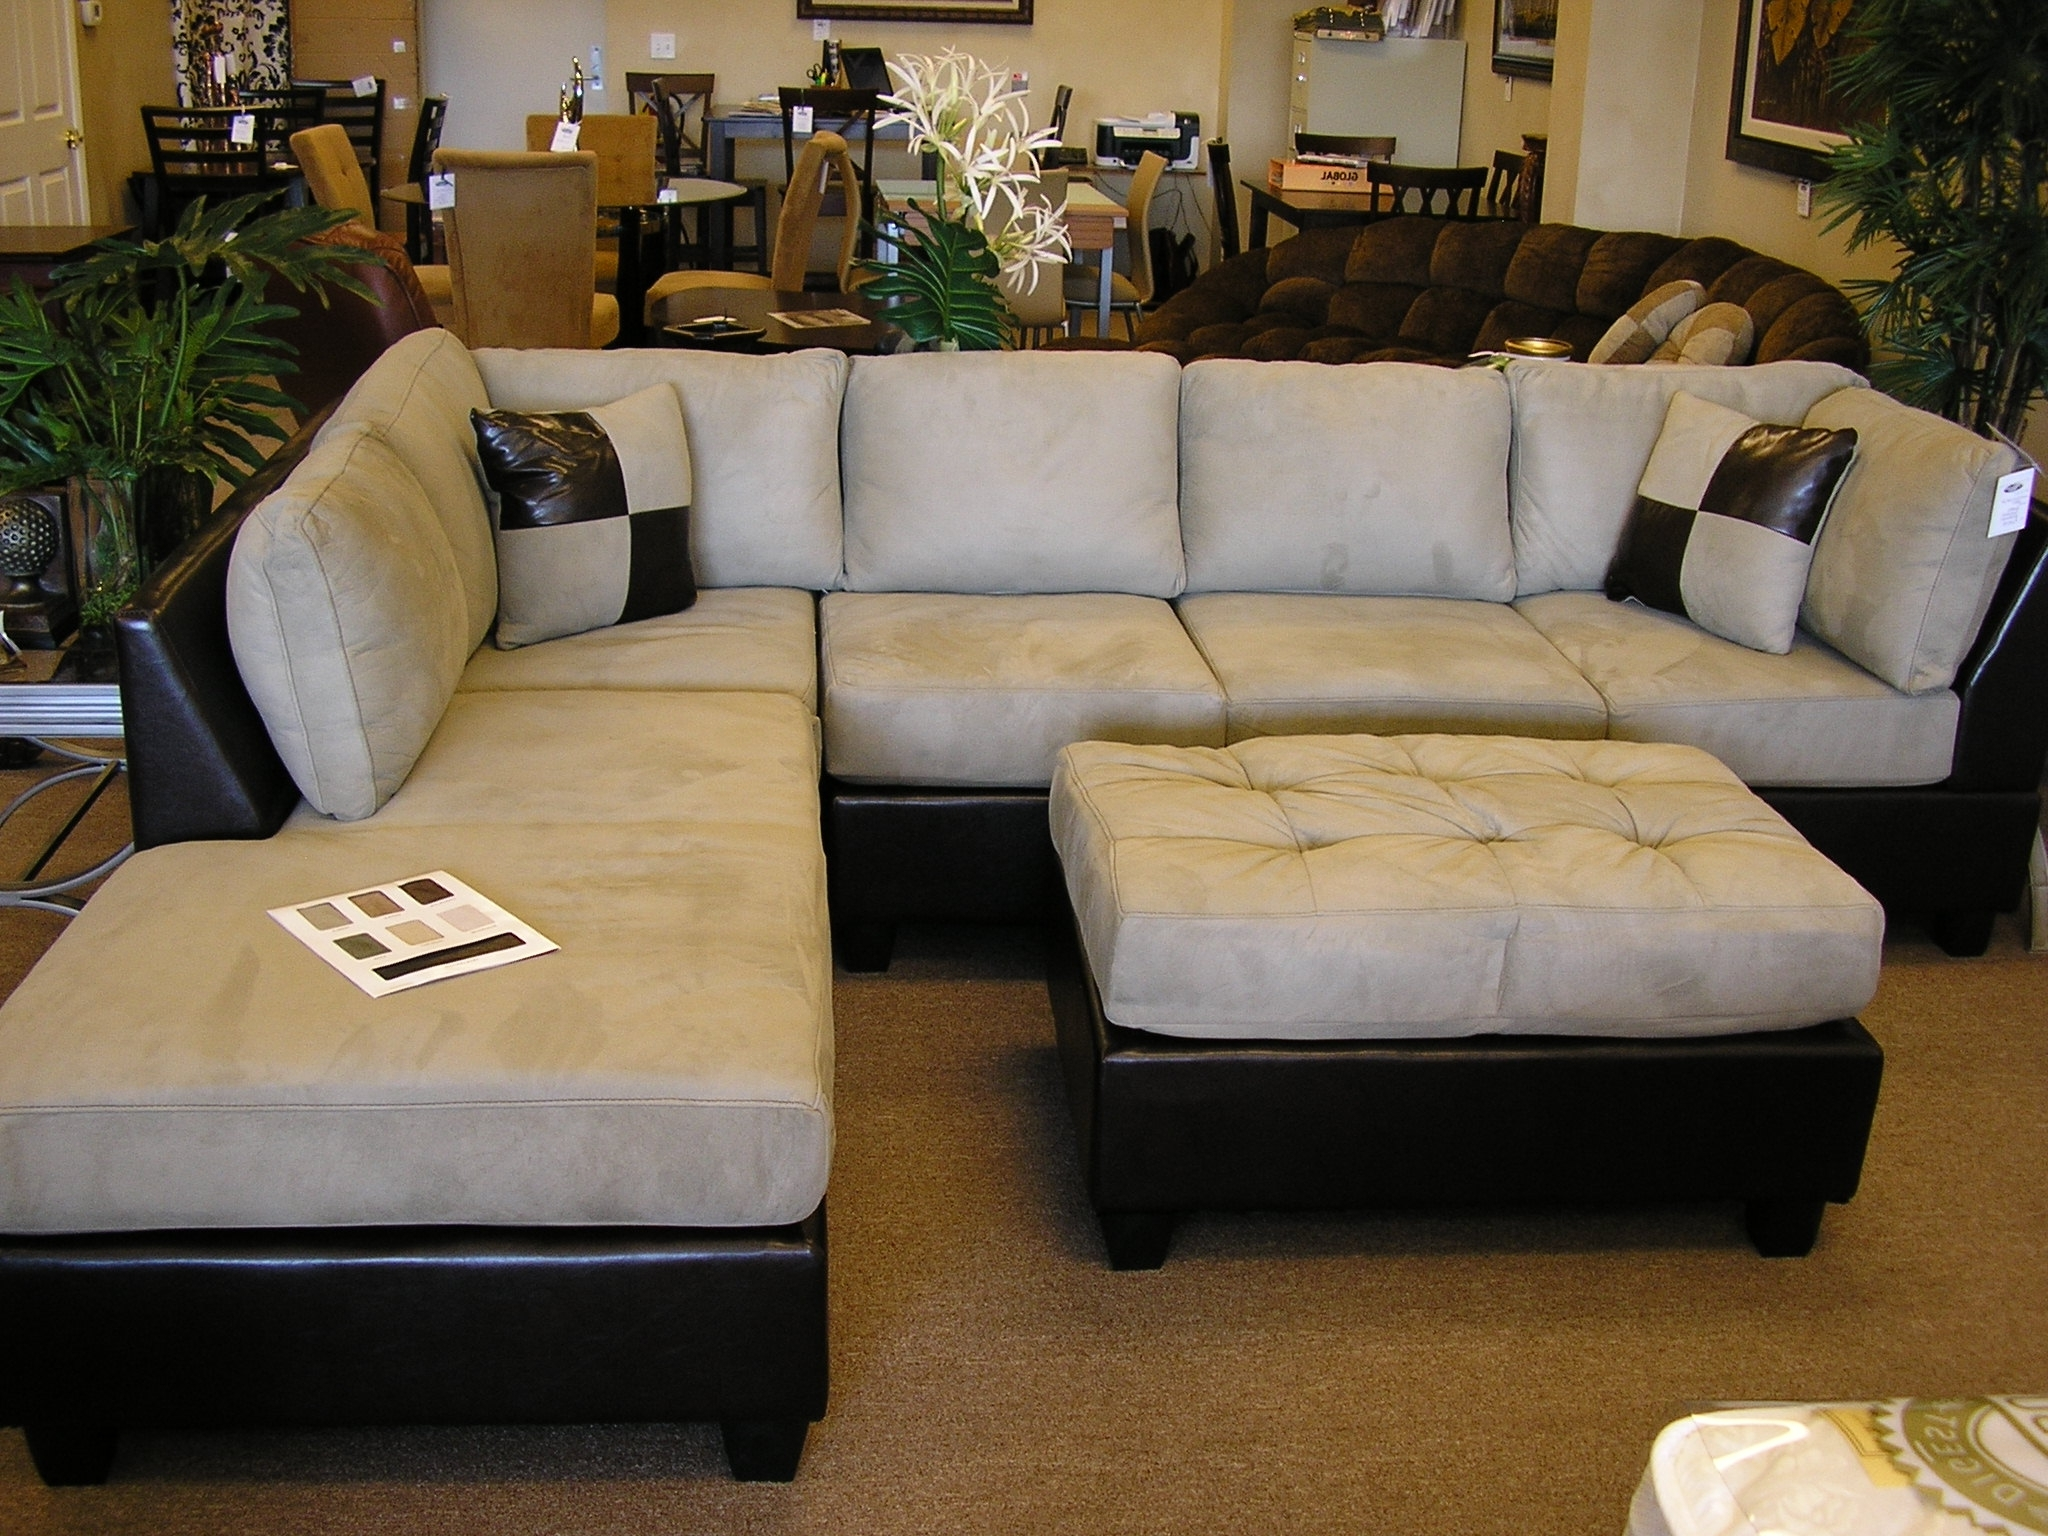 Furniture: Charming Sectionals Sofas For Living Room Furniture With Most Up To Date Tufted Sectionals With Chaise (View 9 of 15)